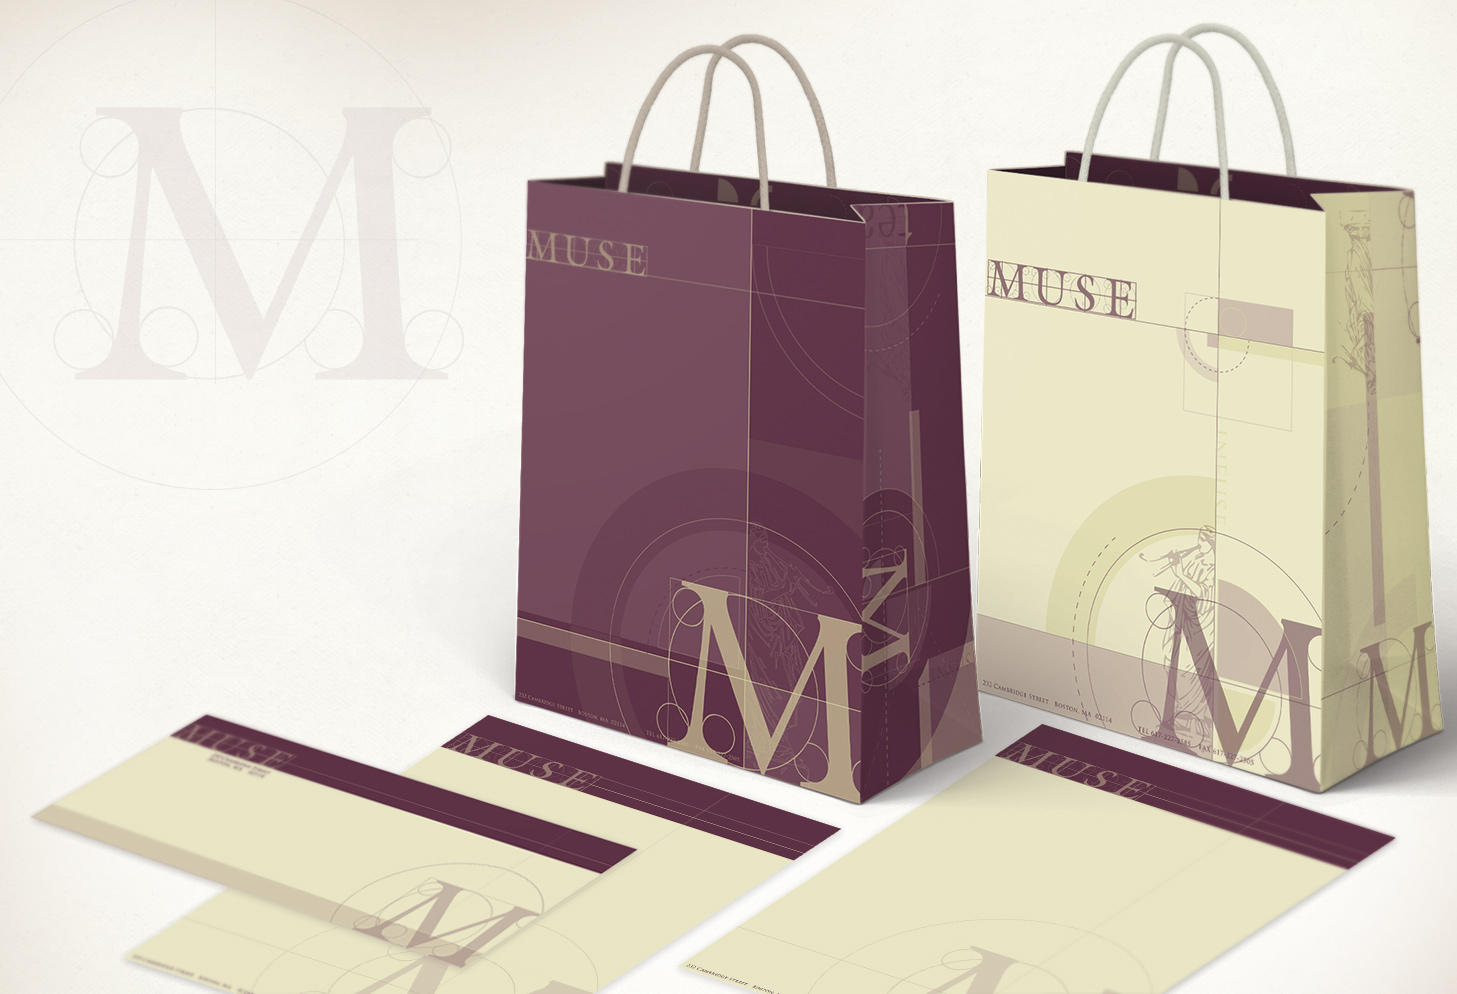 Muse-Tea-Company-Packaging-Design-2